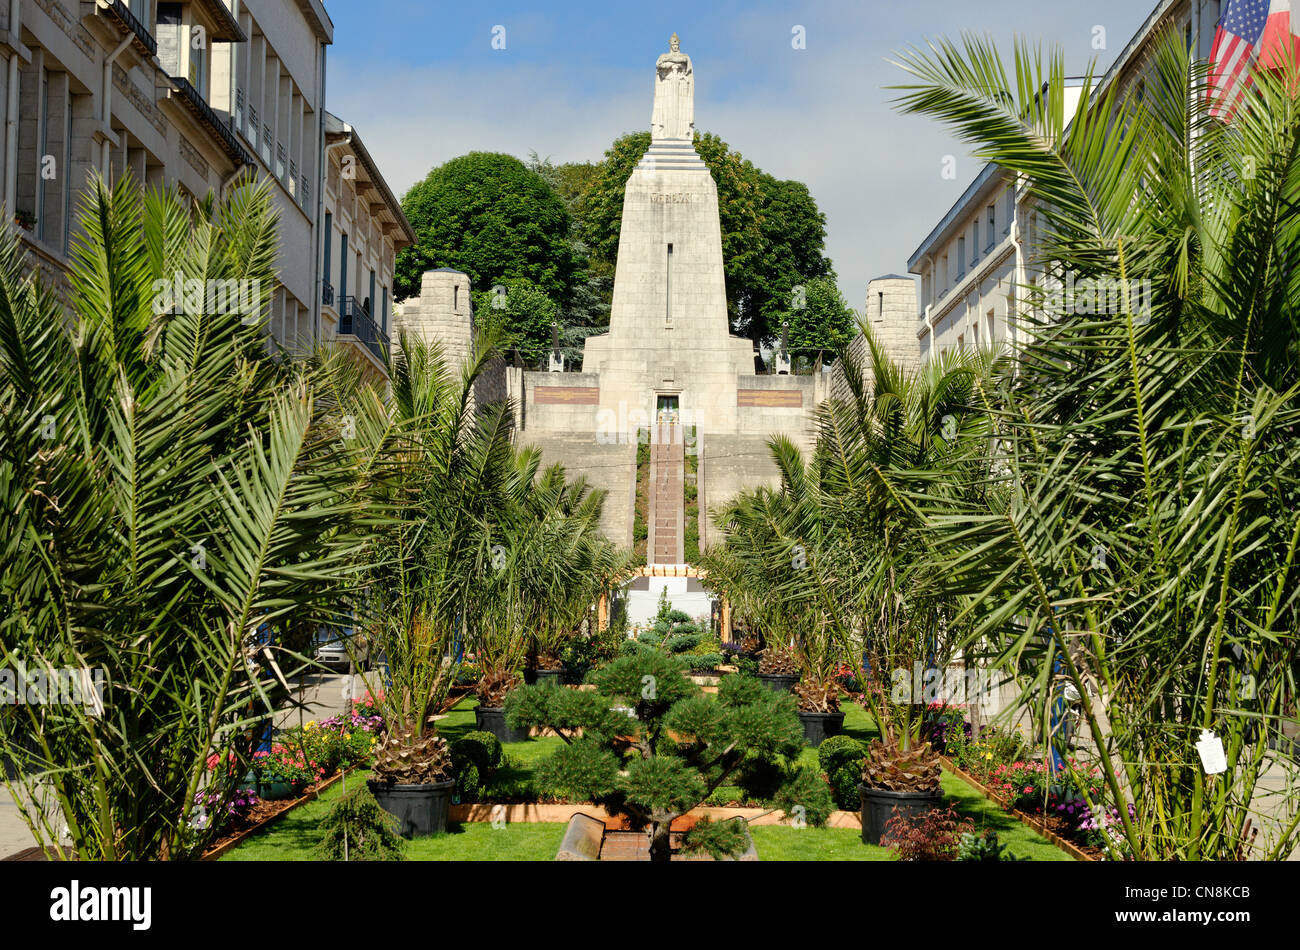 France, Meuse, Verdun, downtown turned into a garden at the foot of the Monument of Victory on the occasion of the - Stock Image